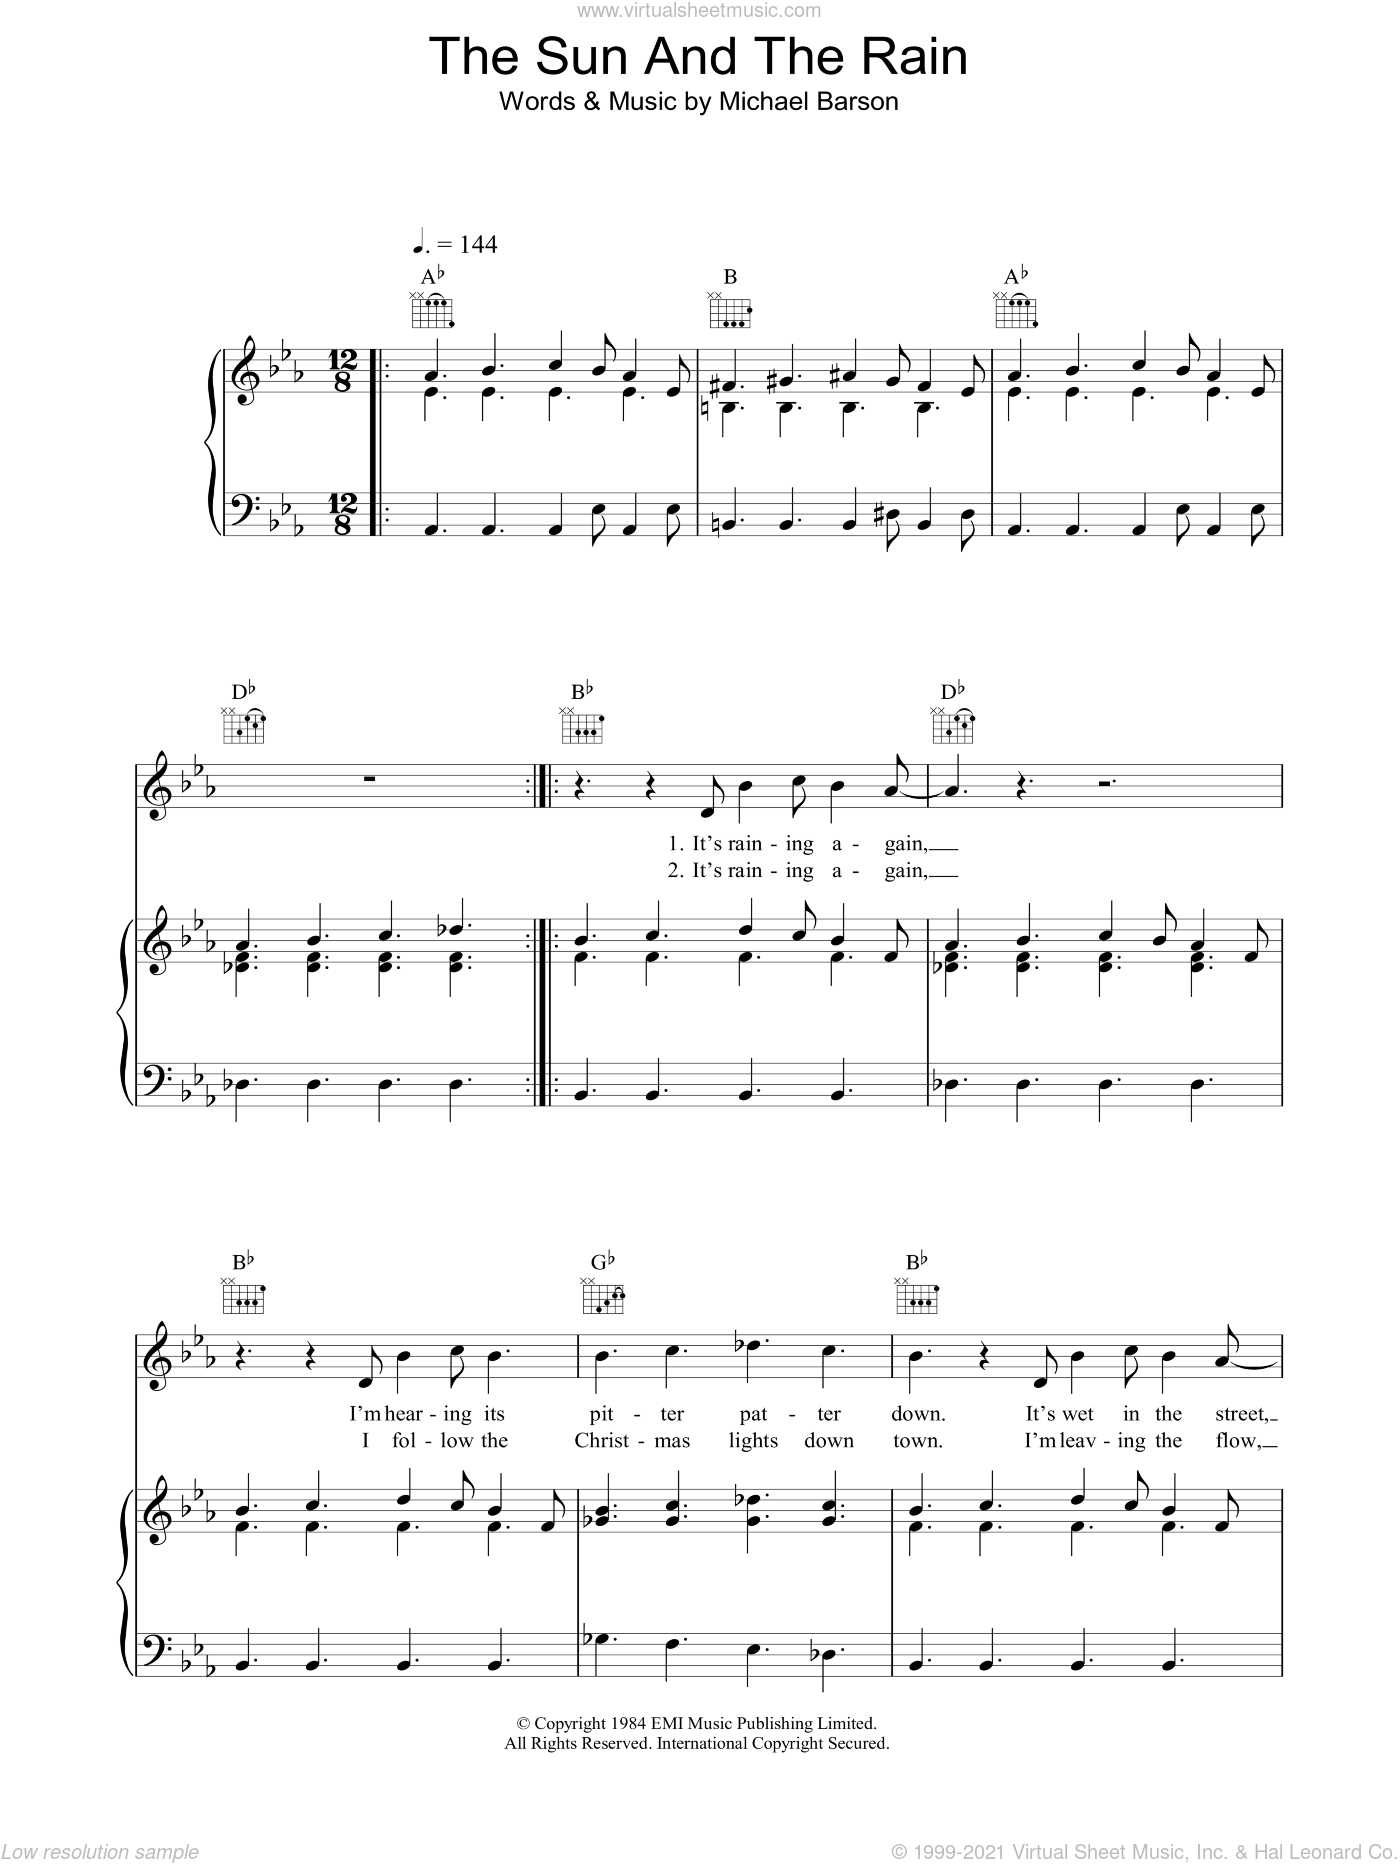 The Sun And The Rain sheet music for voice, piano or guitar by Michael Barson